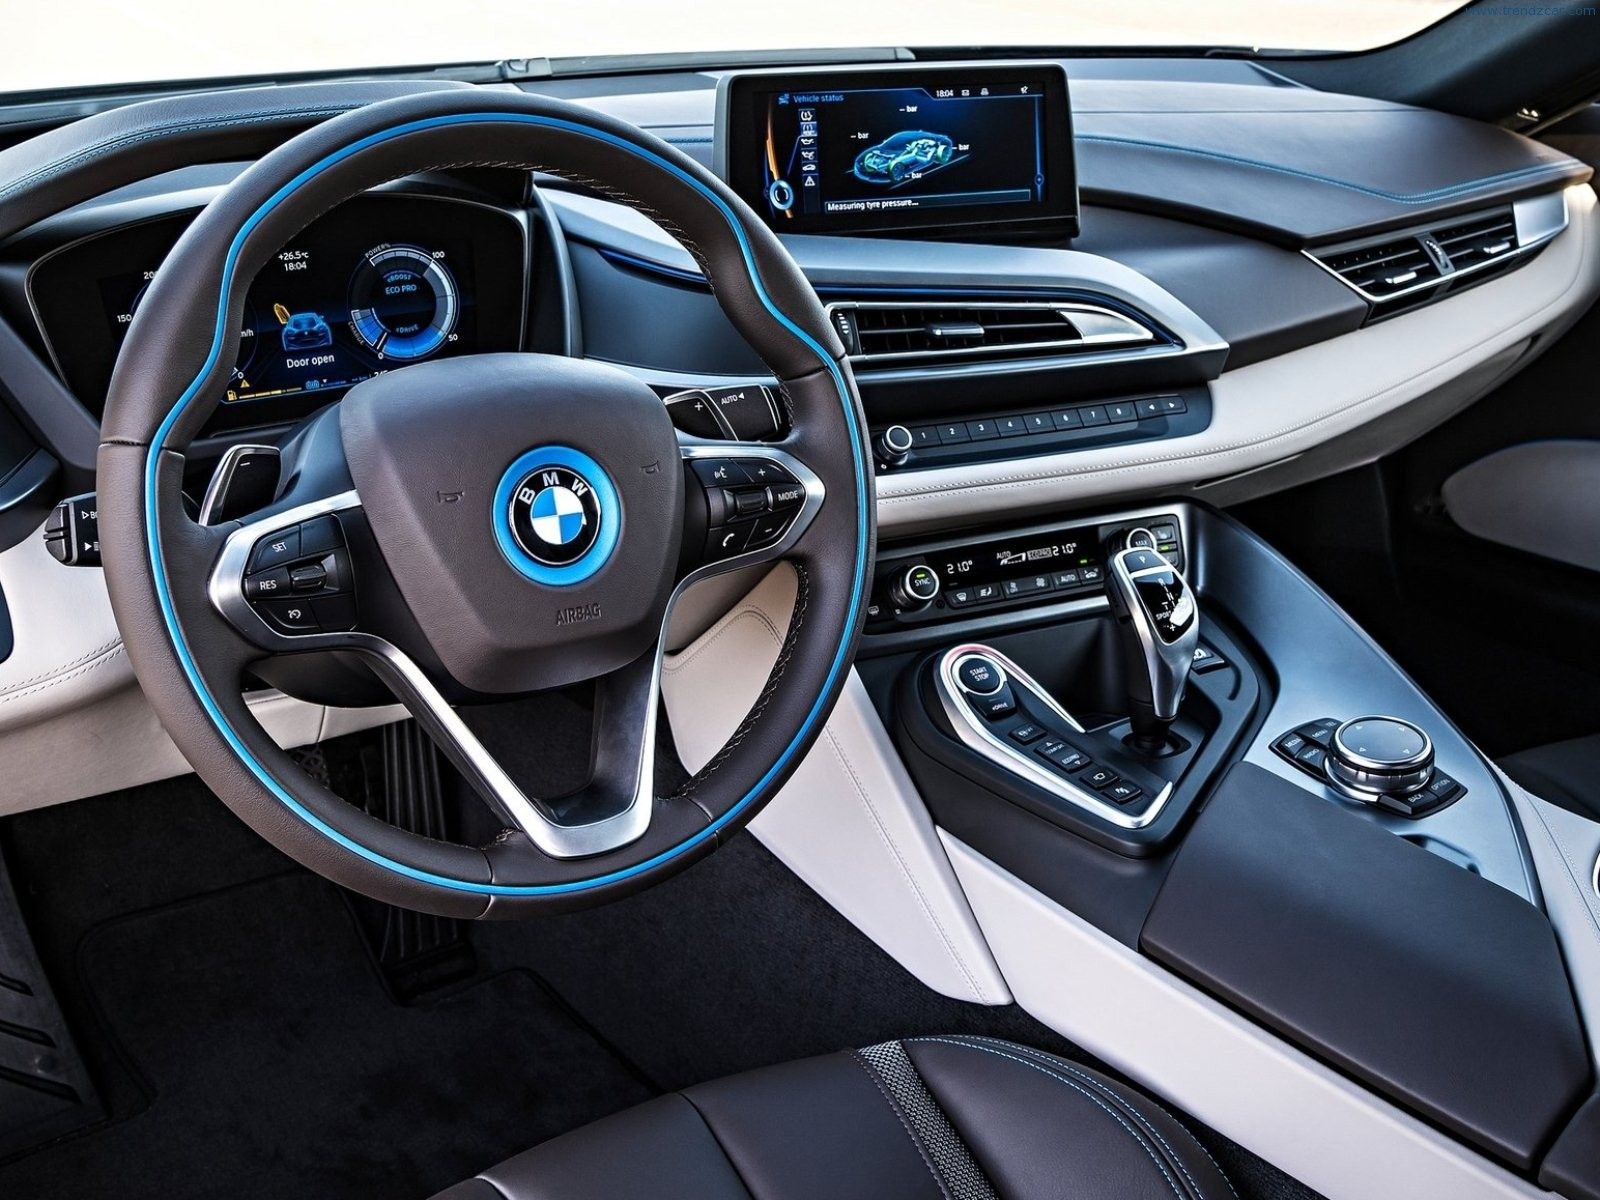 The world s most advanced supercar is here undeniably a masterpiece the bmw hybrid supercar comes straight from the future